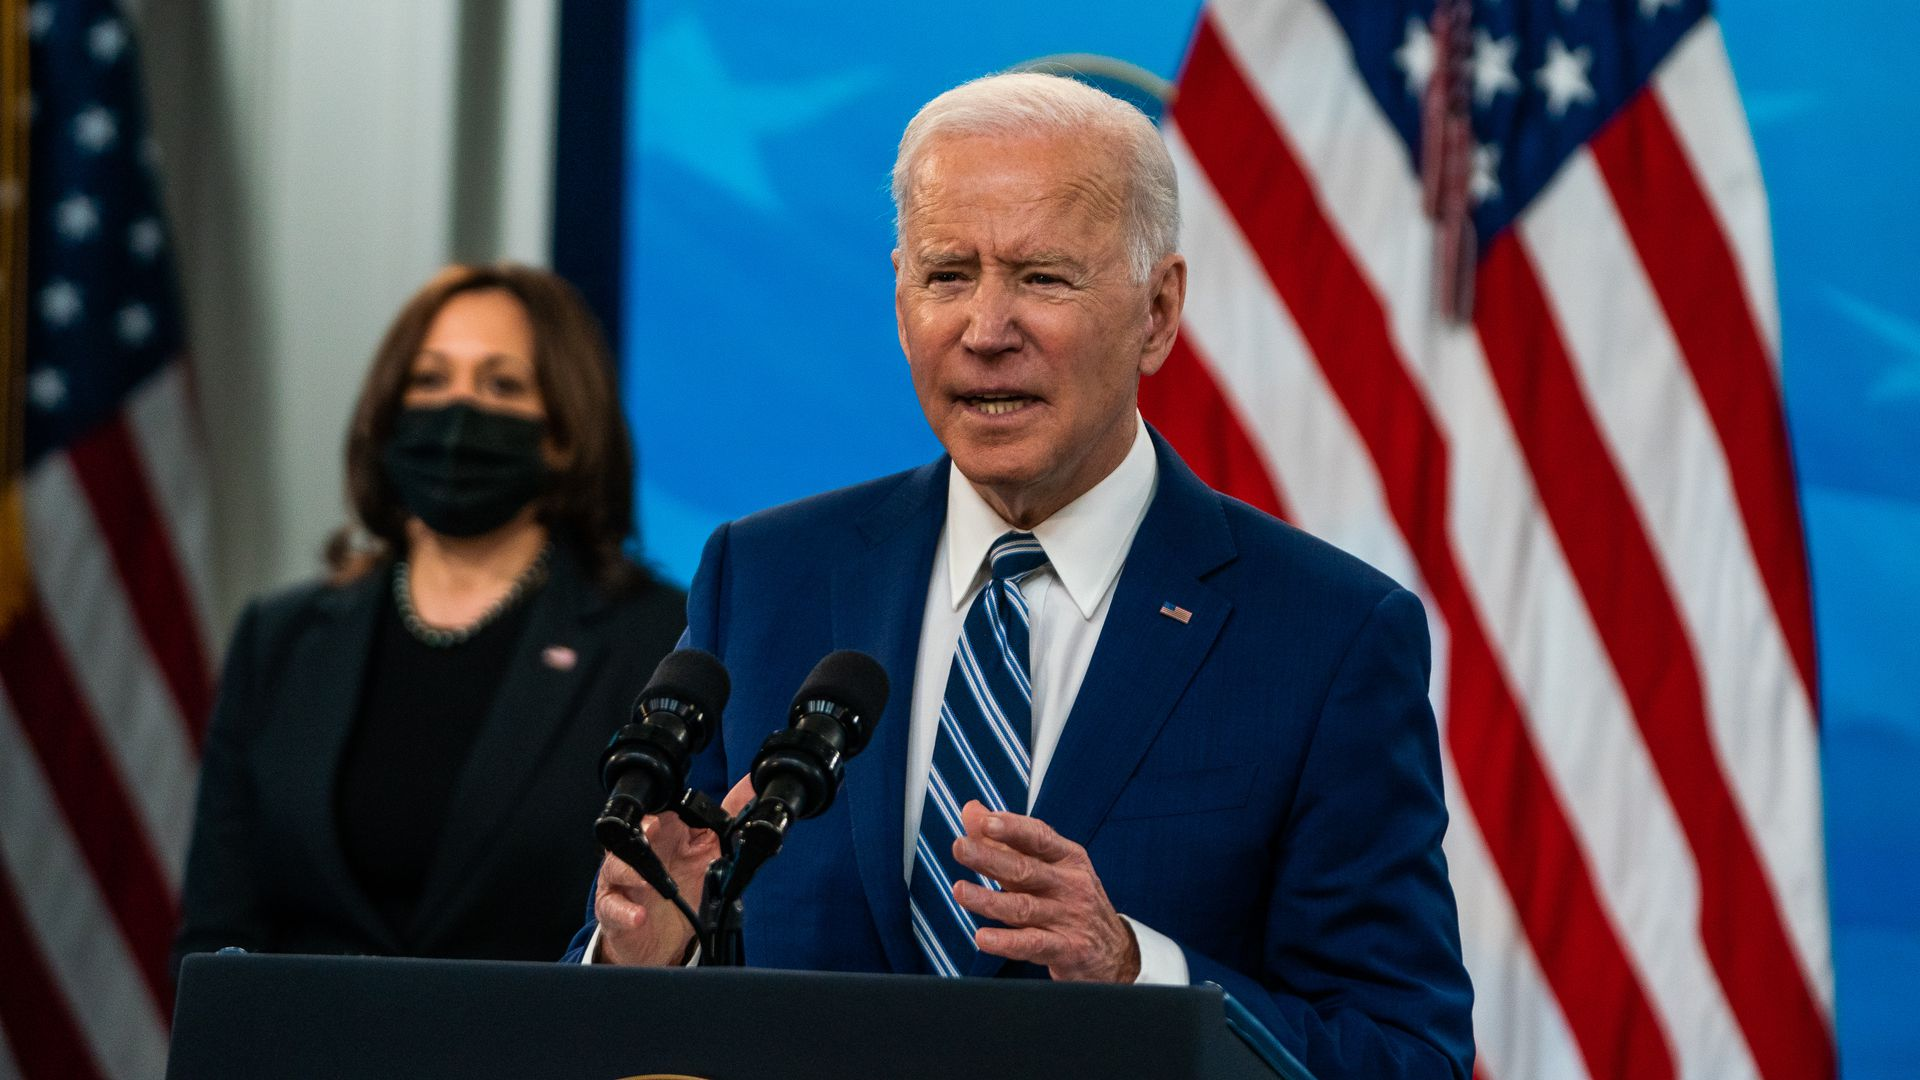 Biden issues first-ever presidential proclamation for Trans Day of Visibility - Axios